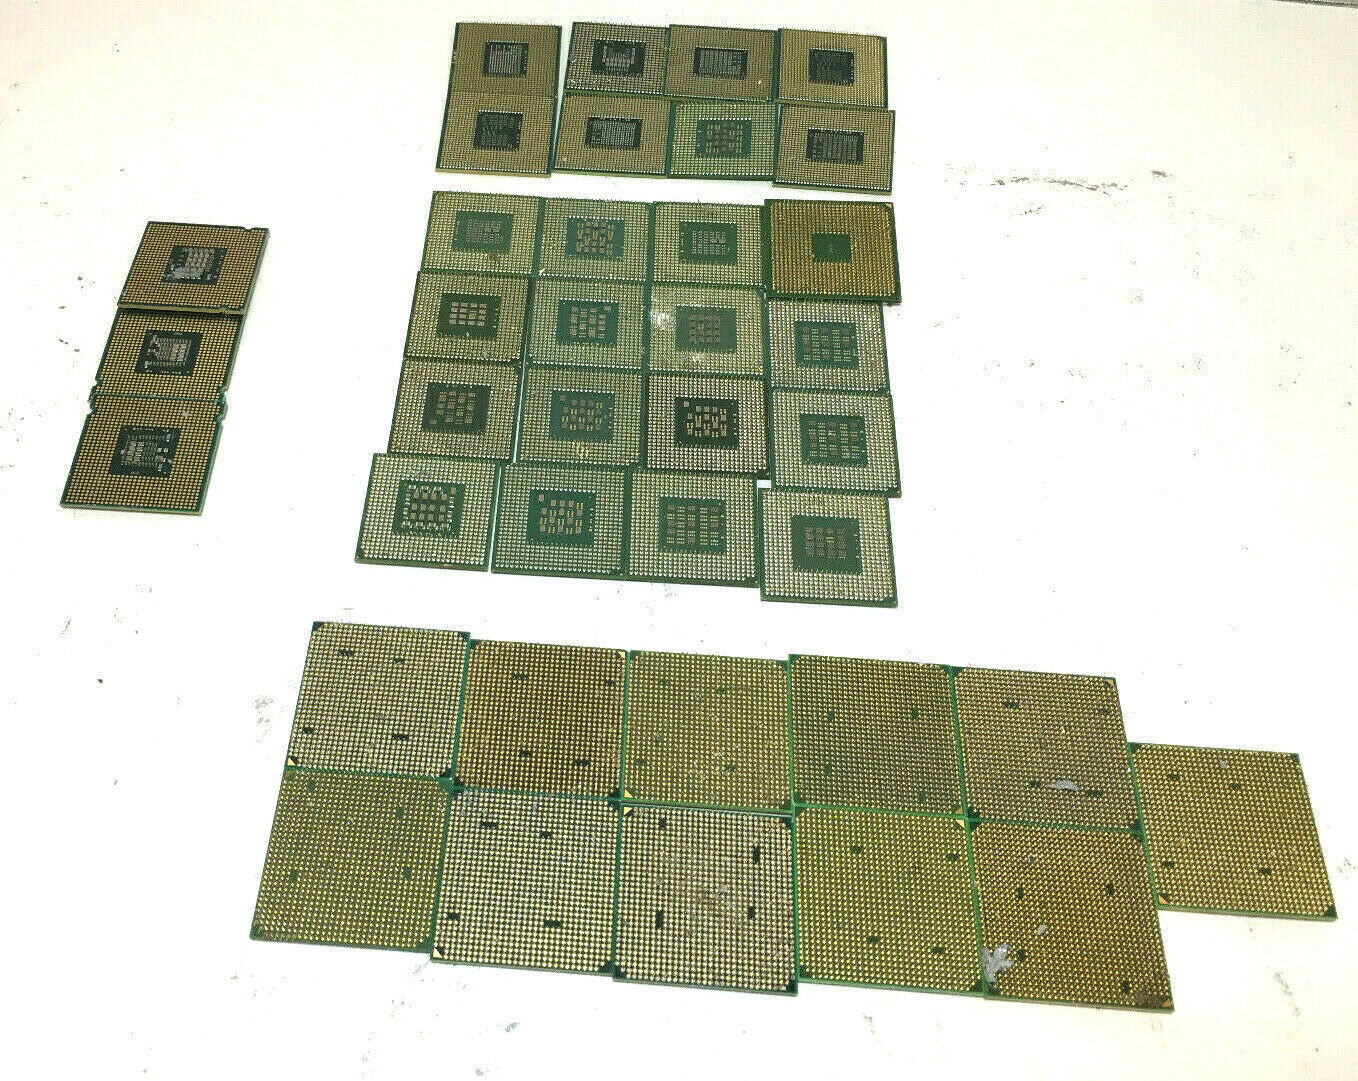 Primary image for 2.20 Lbs Intel Pentium 4 P4 AMD Mix Lot CPU with pins for Gold Scrap Recovery